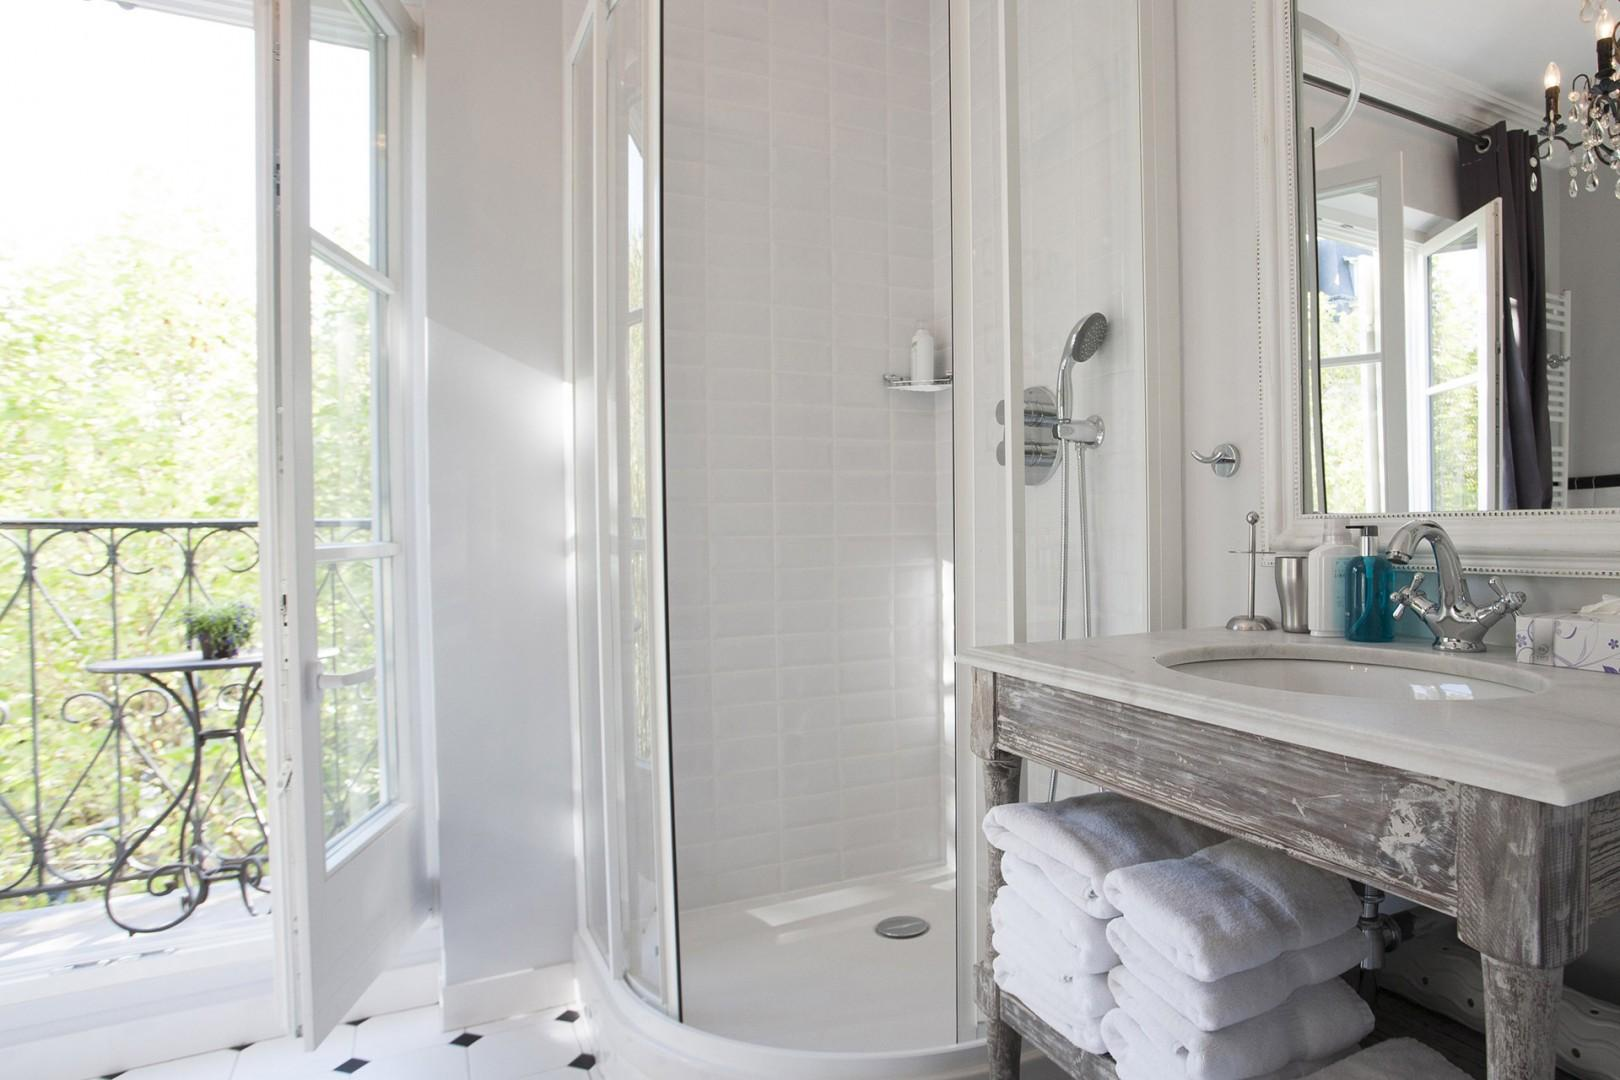 The bright bathroom also features a large shower.